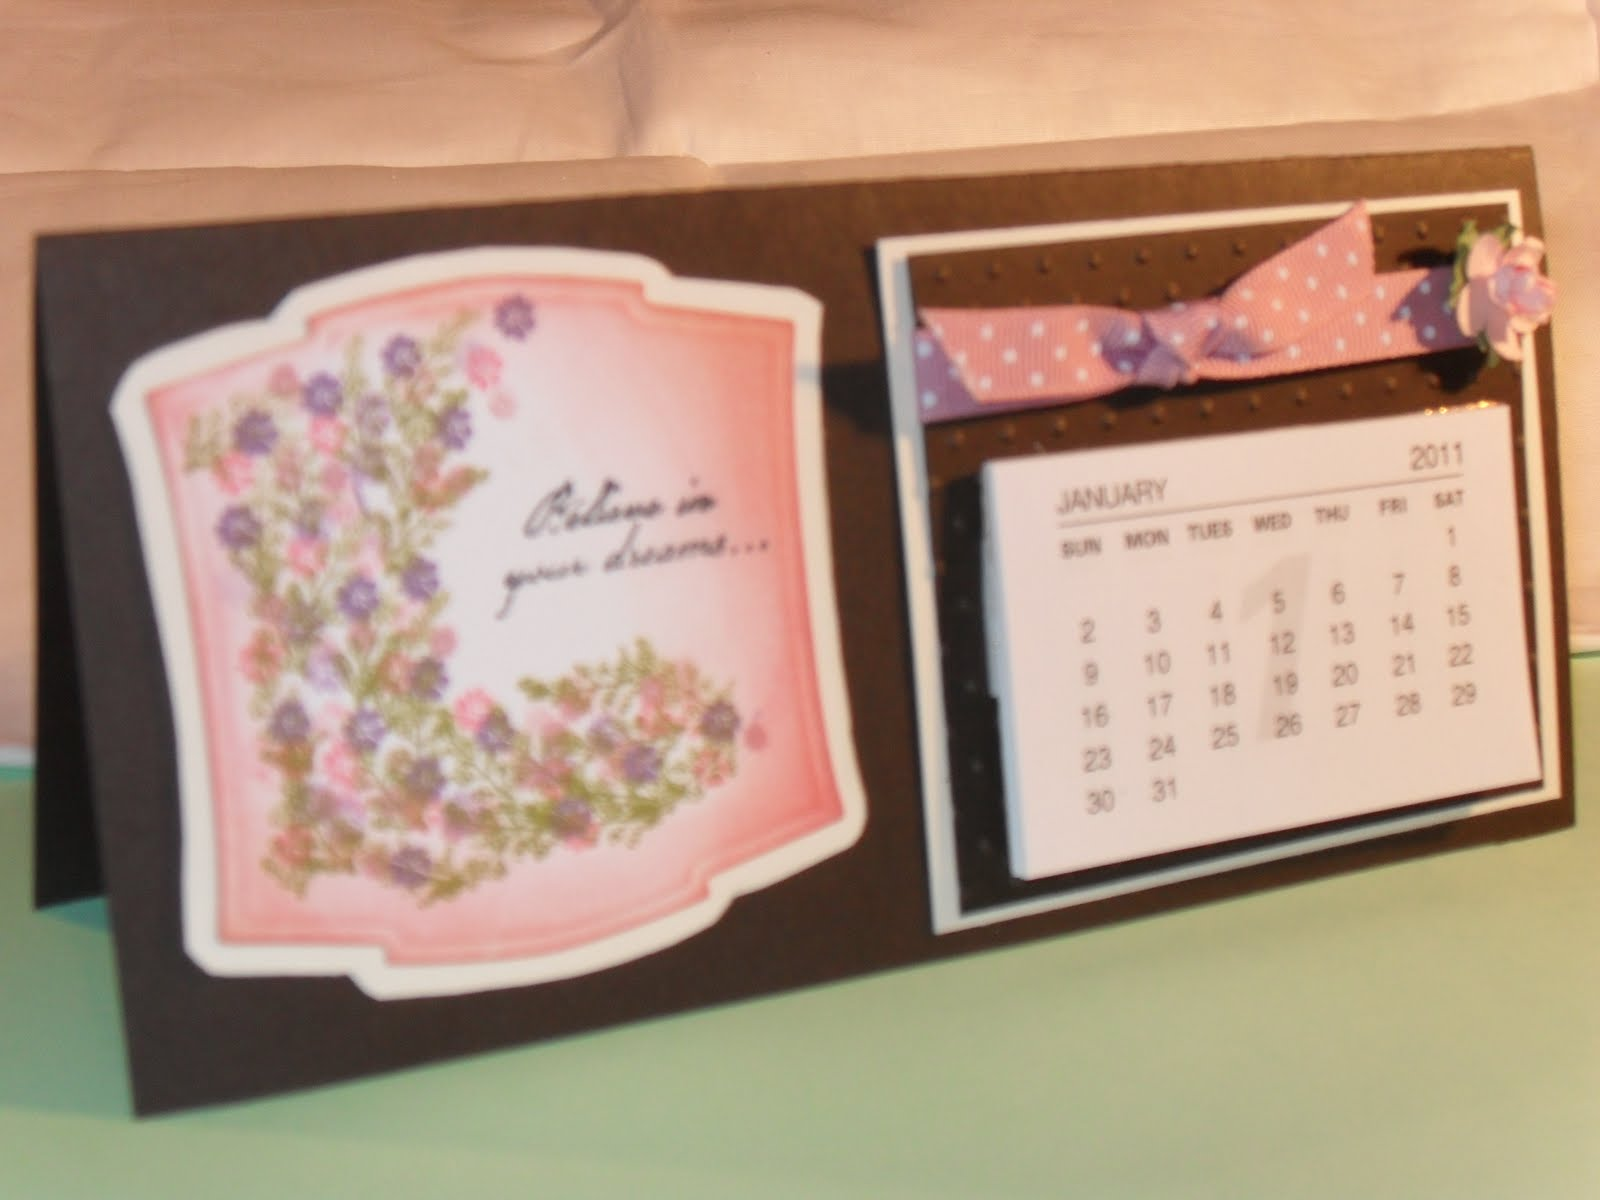 Find and save ideas about Desk calendars on Pinterest. | See more ideas about School calender, Easy diy room decor and Diy desk decorations.